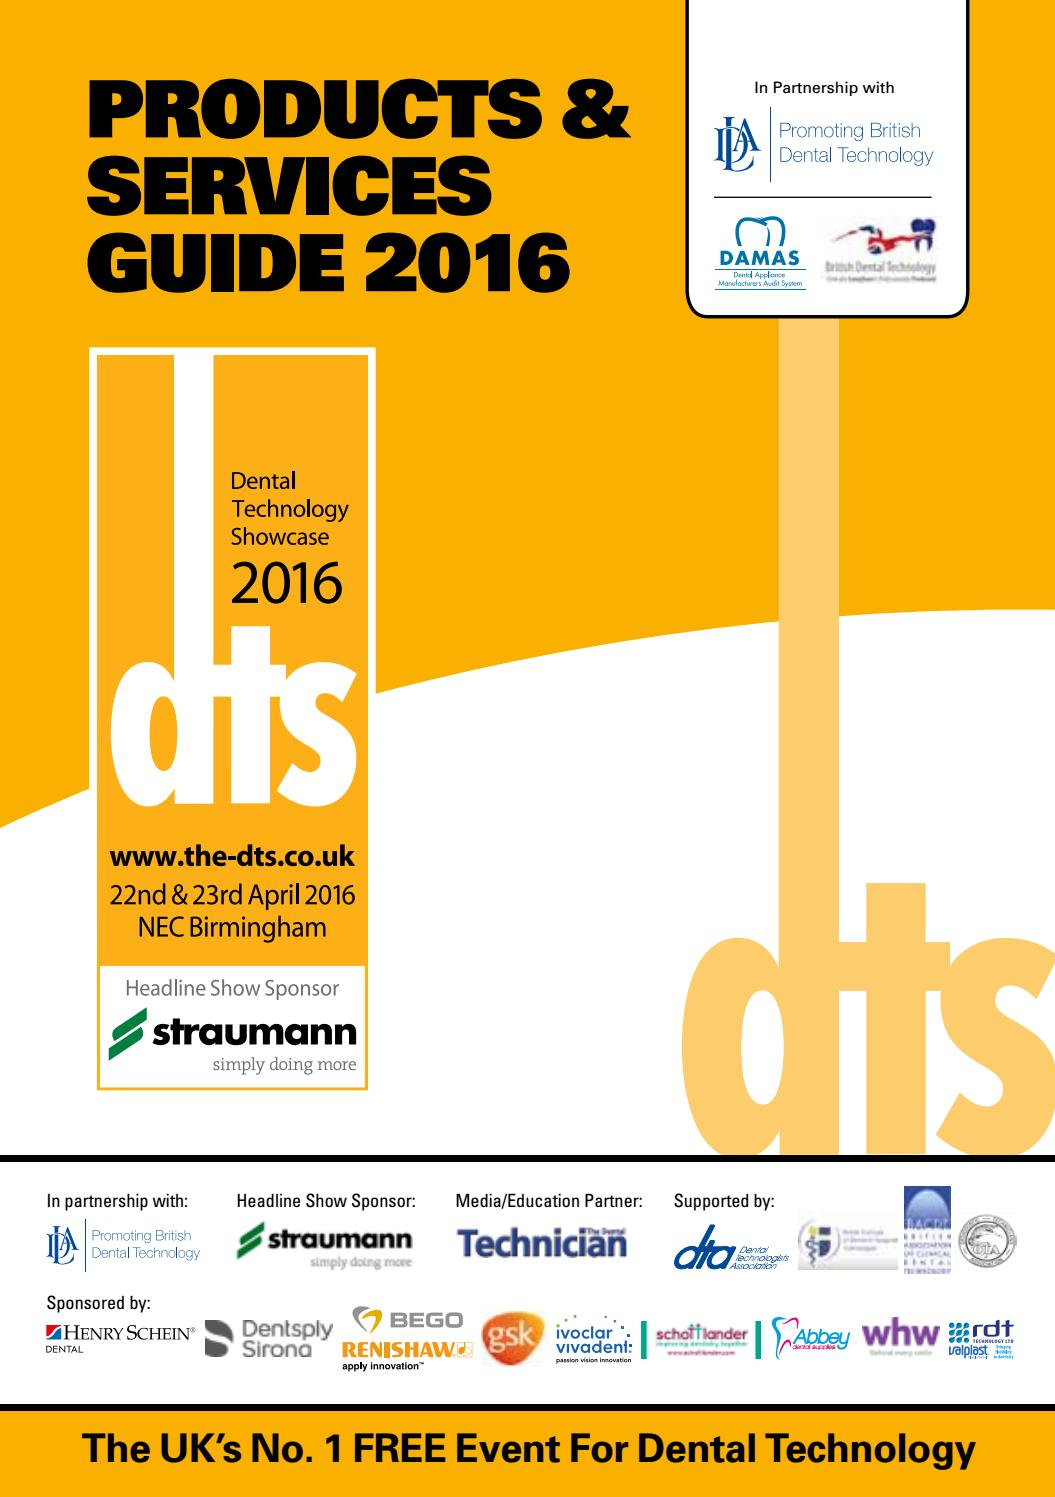 Dts product and services guide 2016 by closerstill media issuu malvernweather Choice Image